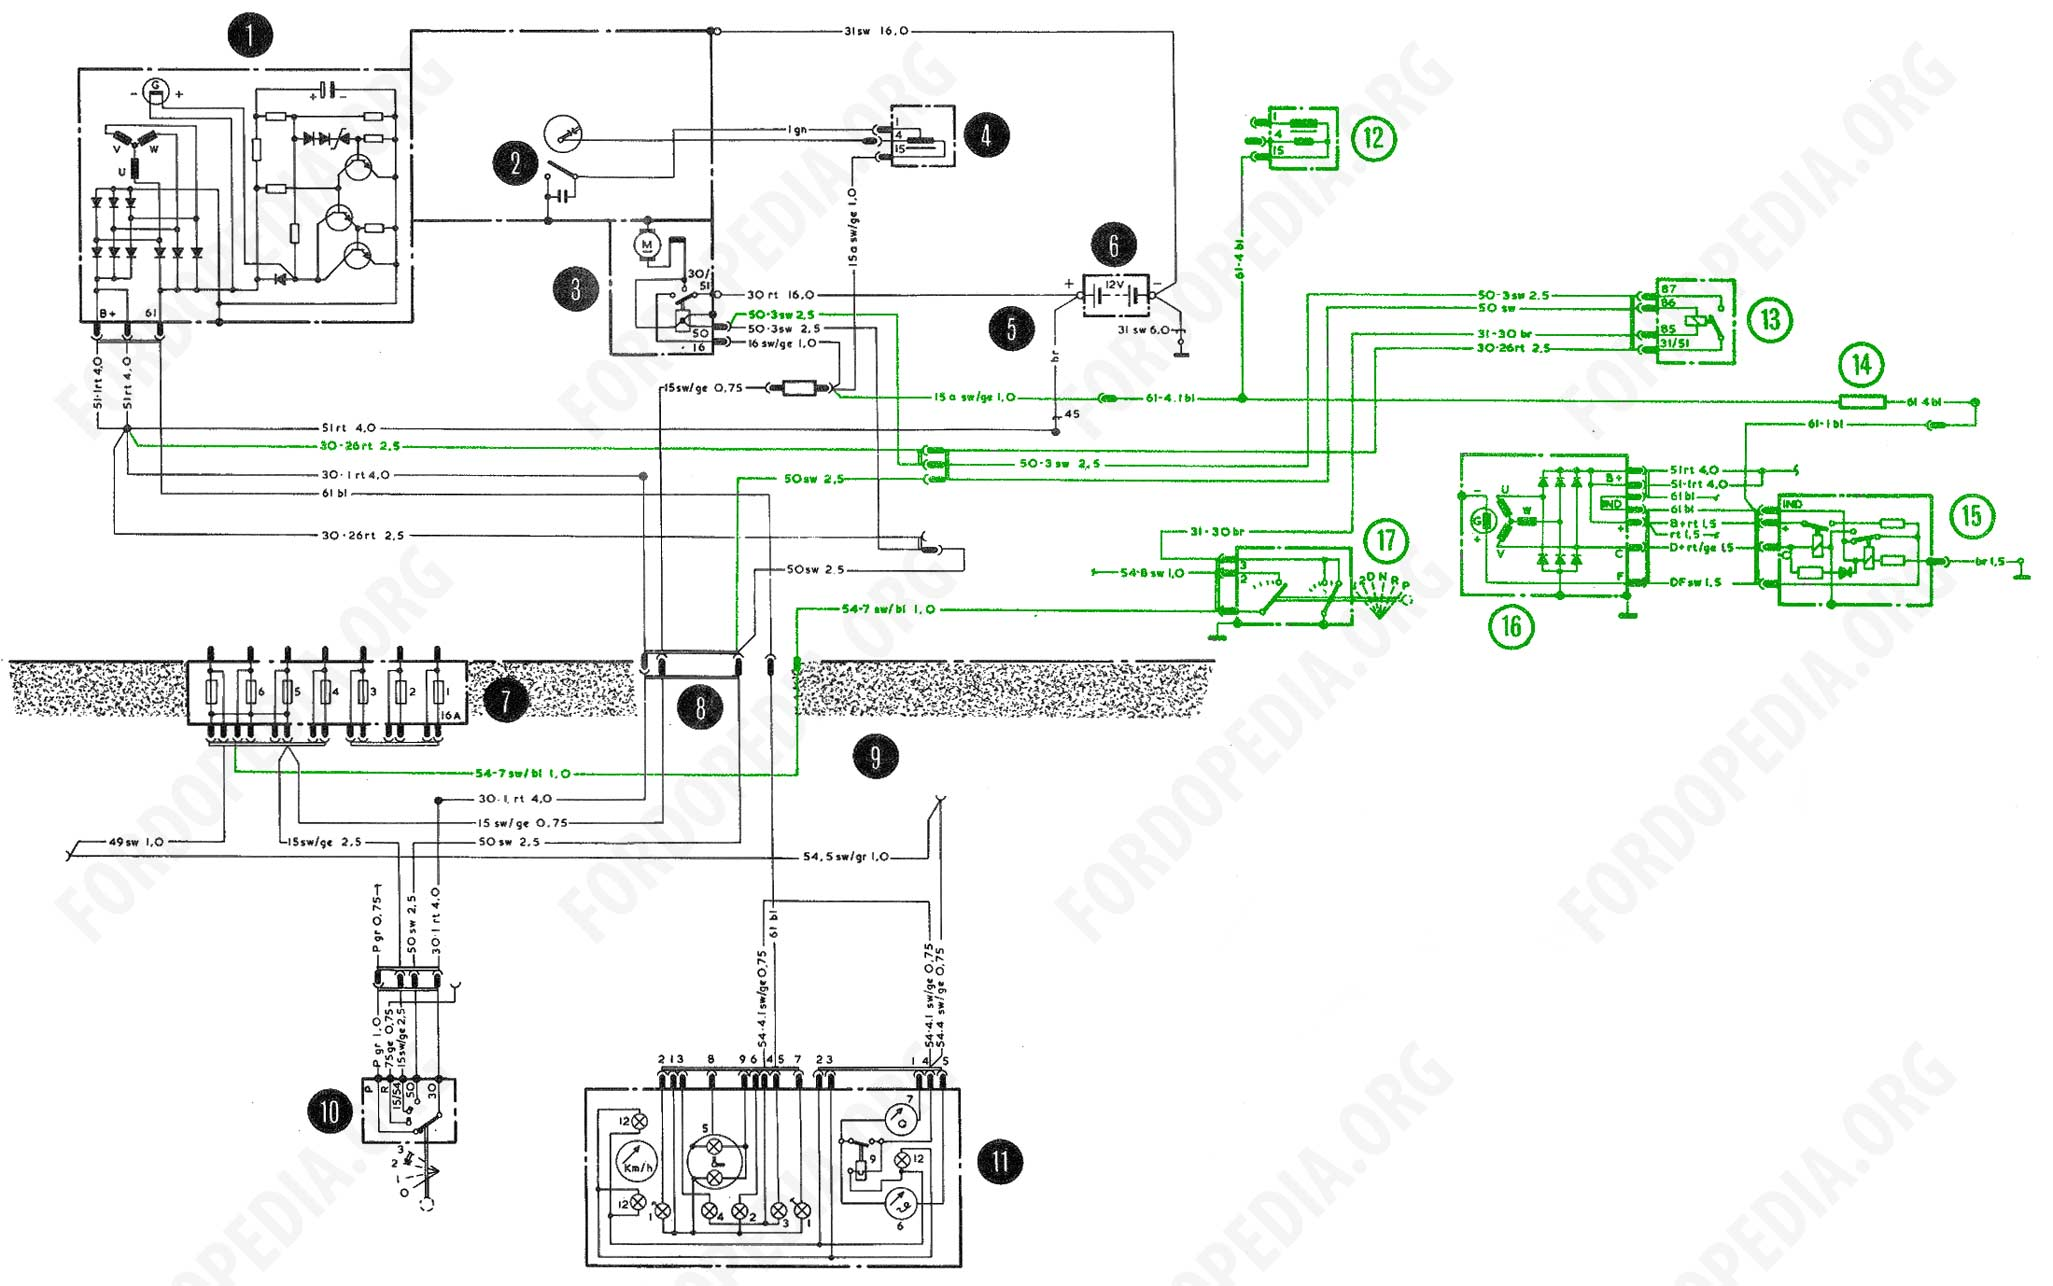 Motor Coil Wiring Diagram Schematic Dryer 220 Download Full Size Image 2056x1283 Kb Diagrams Taunus Tc2